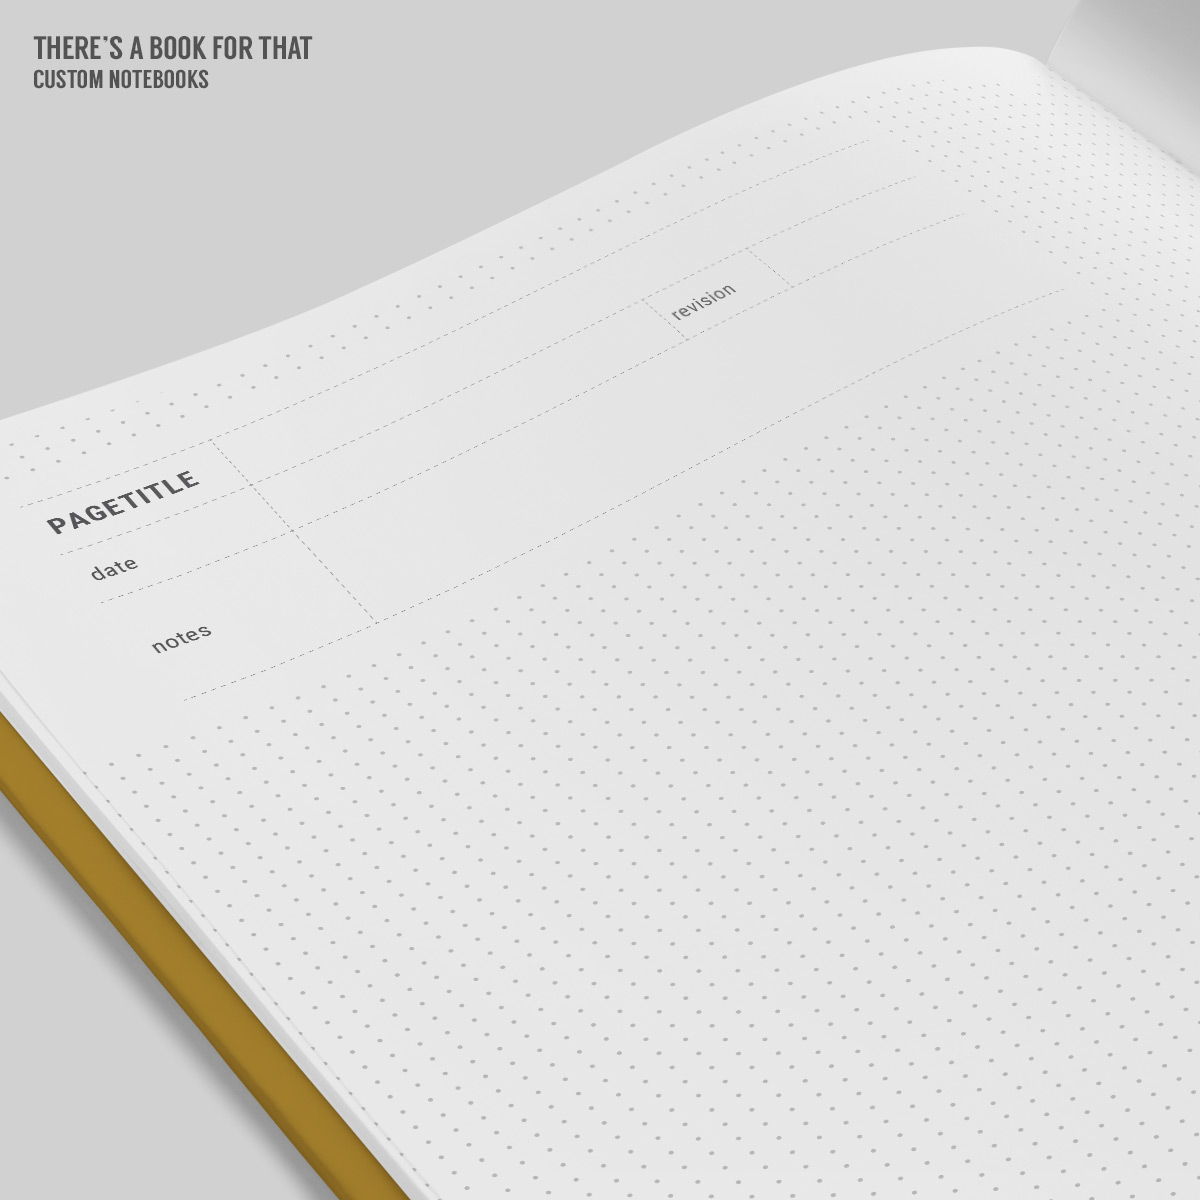 This customized planner - a dotted notebook with 3 different, alternating grids – graph, dotted graph & dotted grid. Alternating grids support creativity and encourage thinking out of the box.